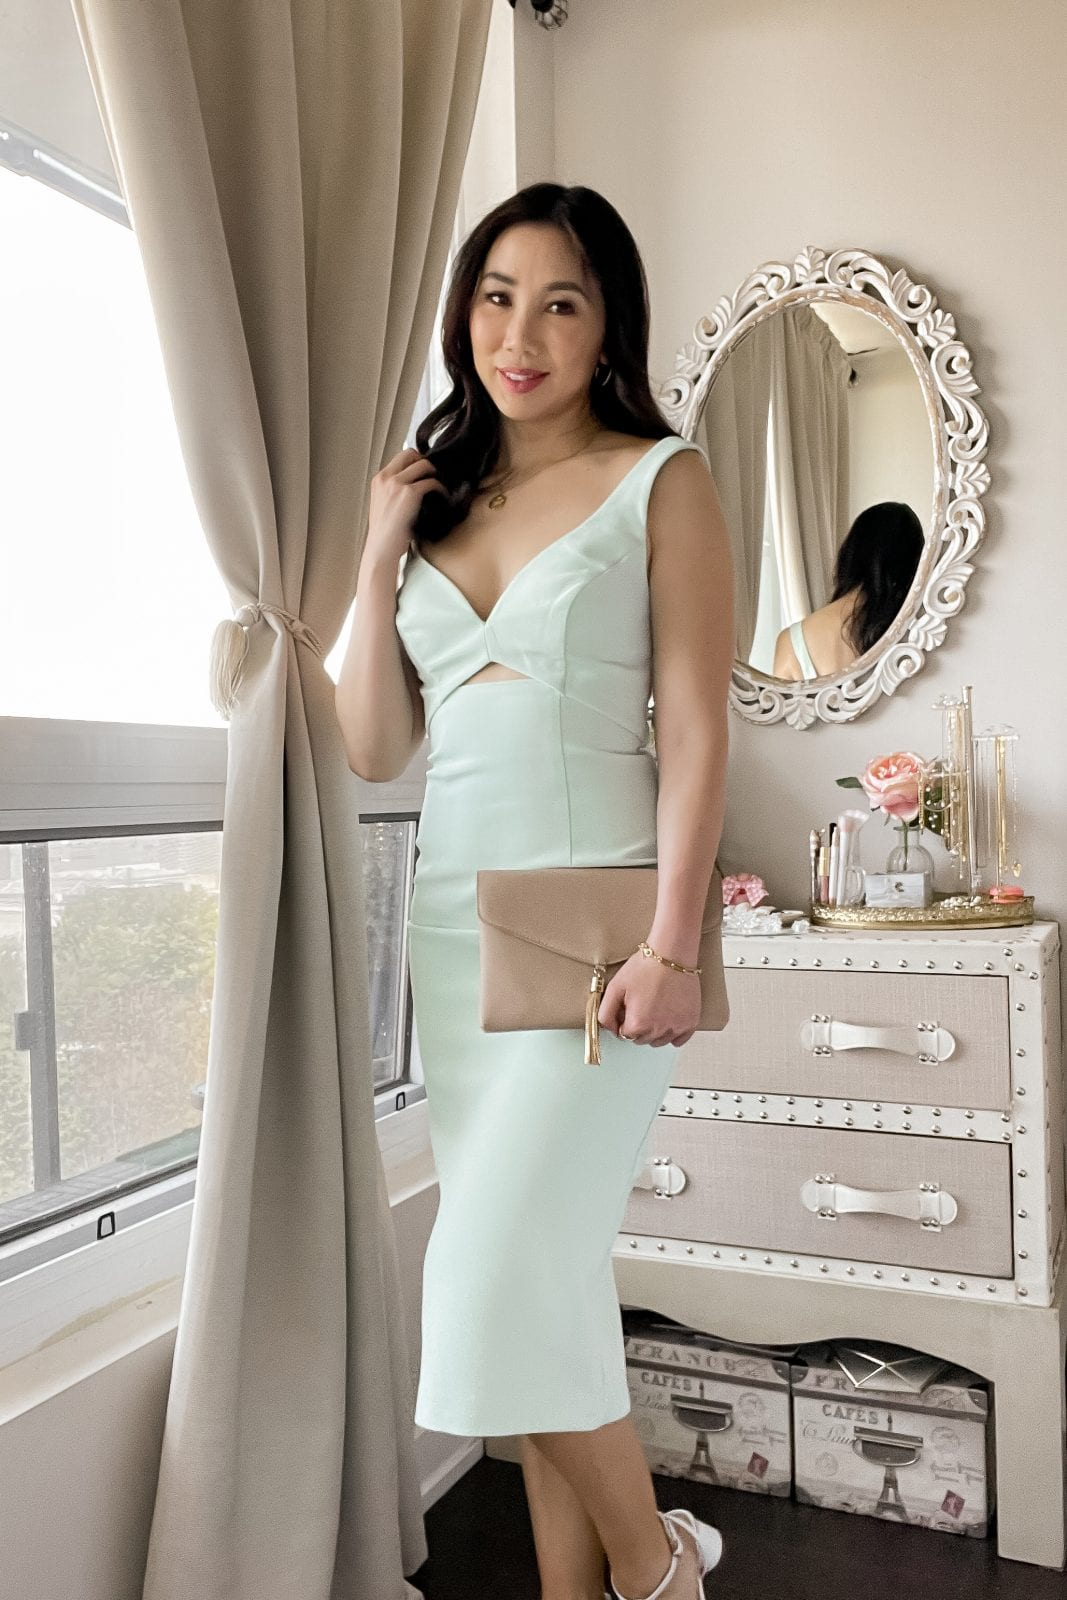 This sleek cut-out midi dress is the perfect wedding guest dress for summer! Check out more outfit inspiration at yesmissy.com